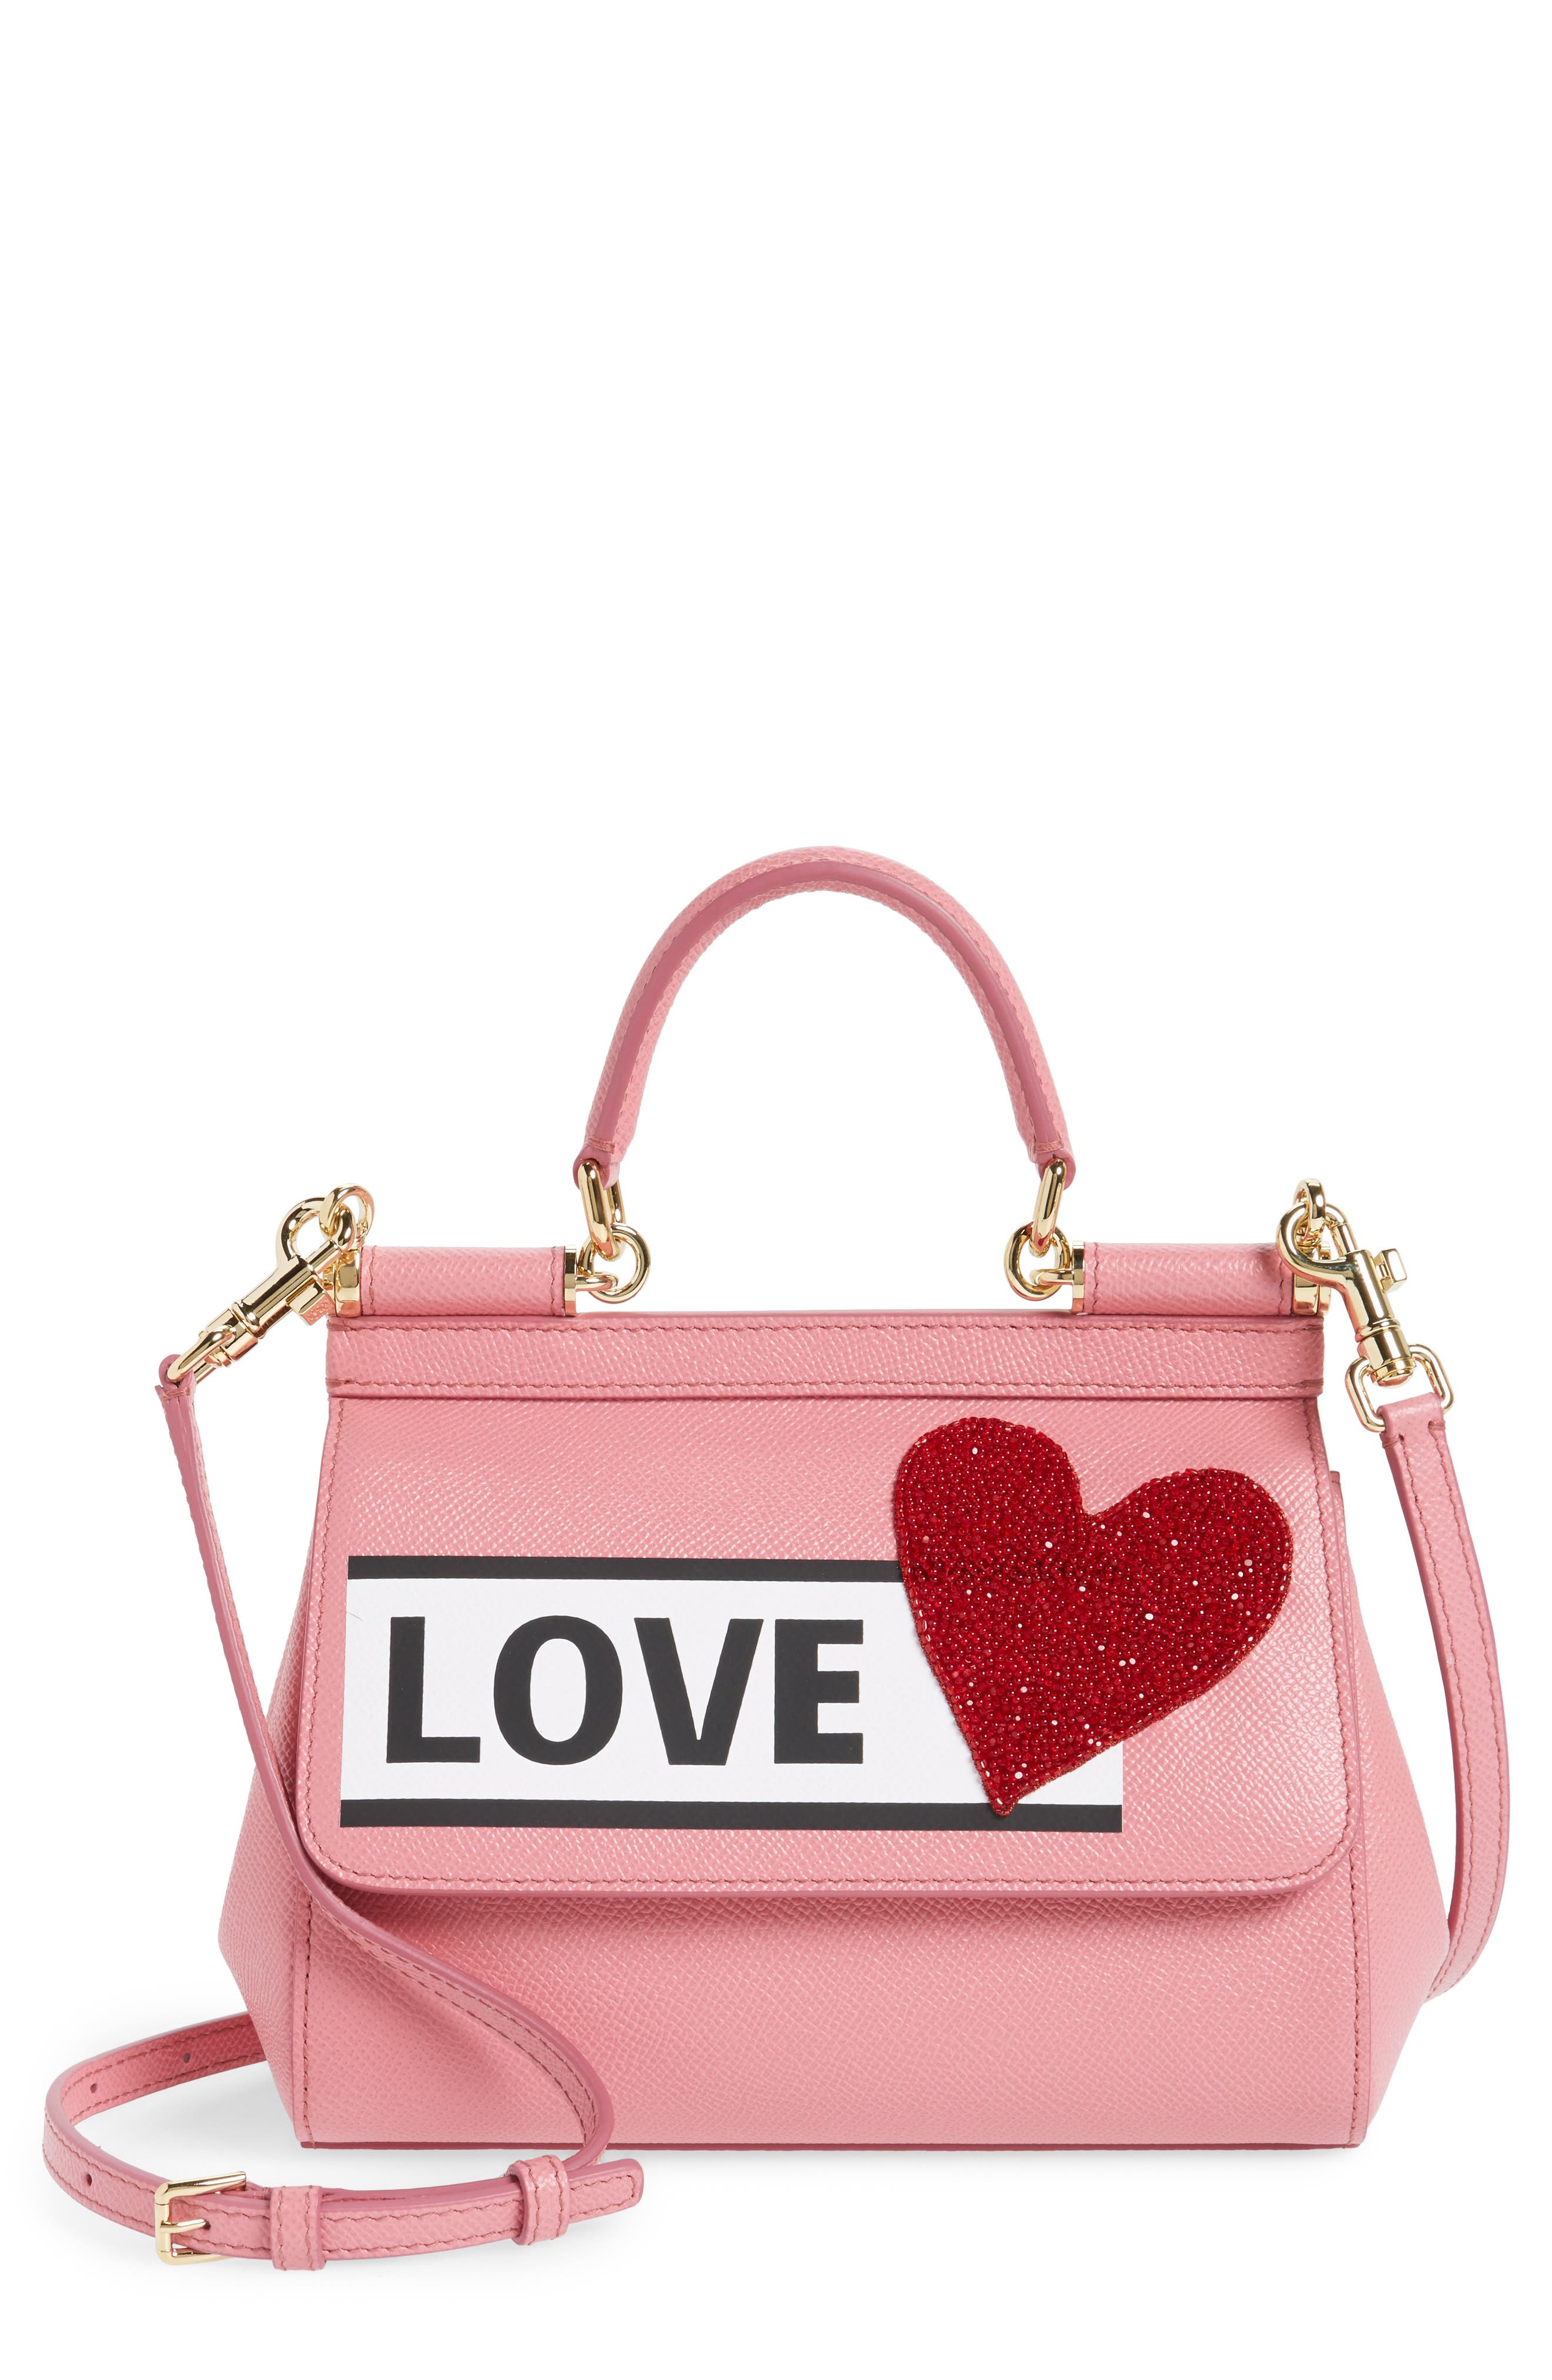 Small Miss Sicily - Love Leather Satchel,                         Main,                         color, 670